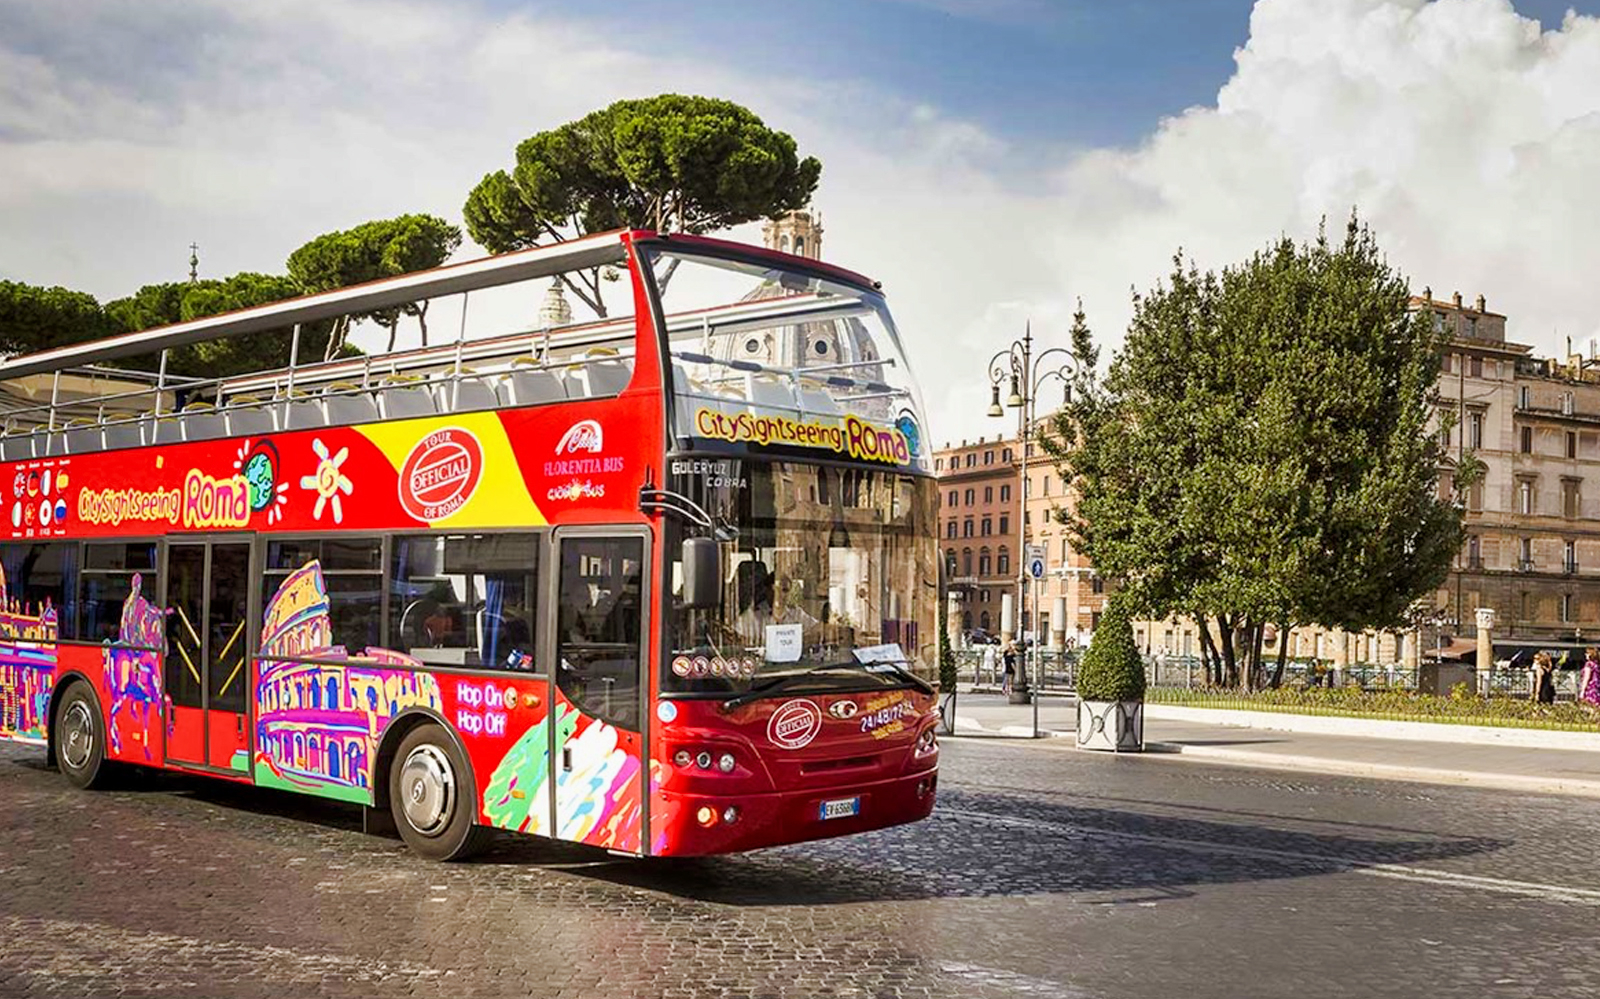 Da2a92be de4f 4e8e a8a1 655e54a3b9d5 10320 rome rome hop on hop off bus tour   skip the line colosseum tickets 03